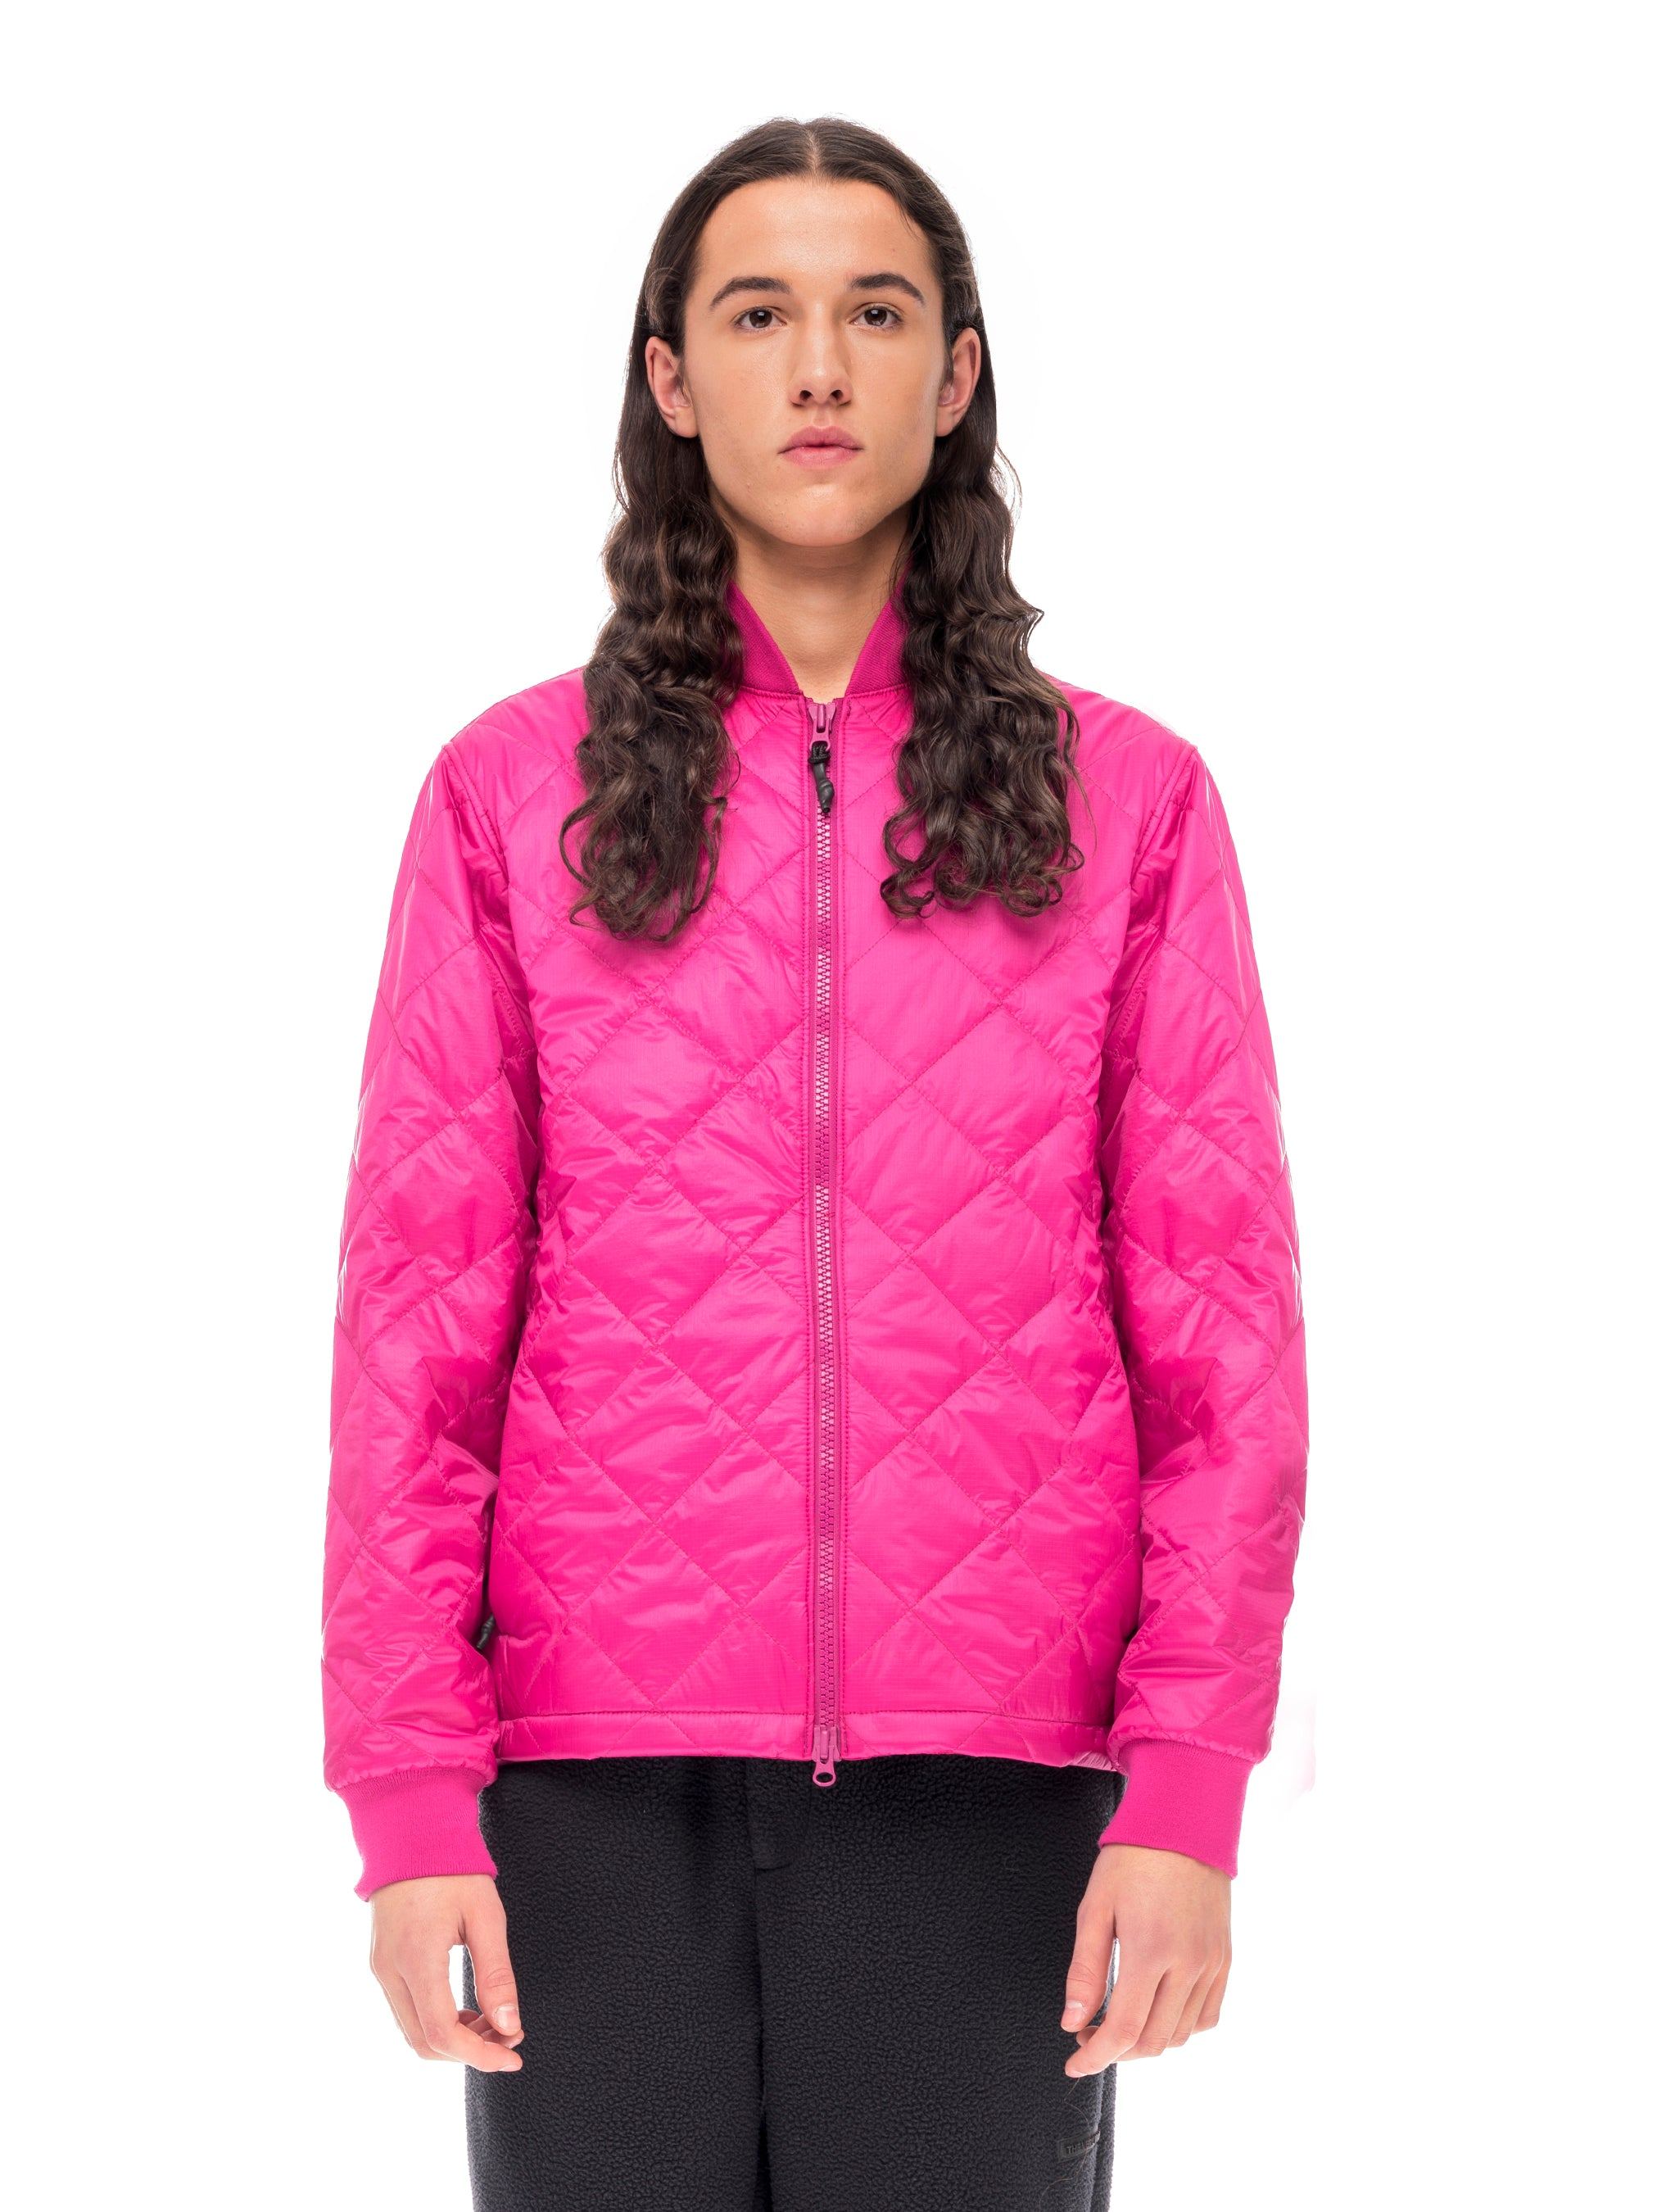 Quilted Through Light Quilted Bomber - Fuchsia [bomber_Vandal], [The Very Warm], [The Very Warm]